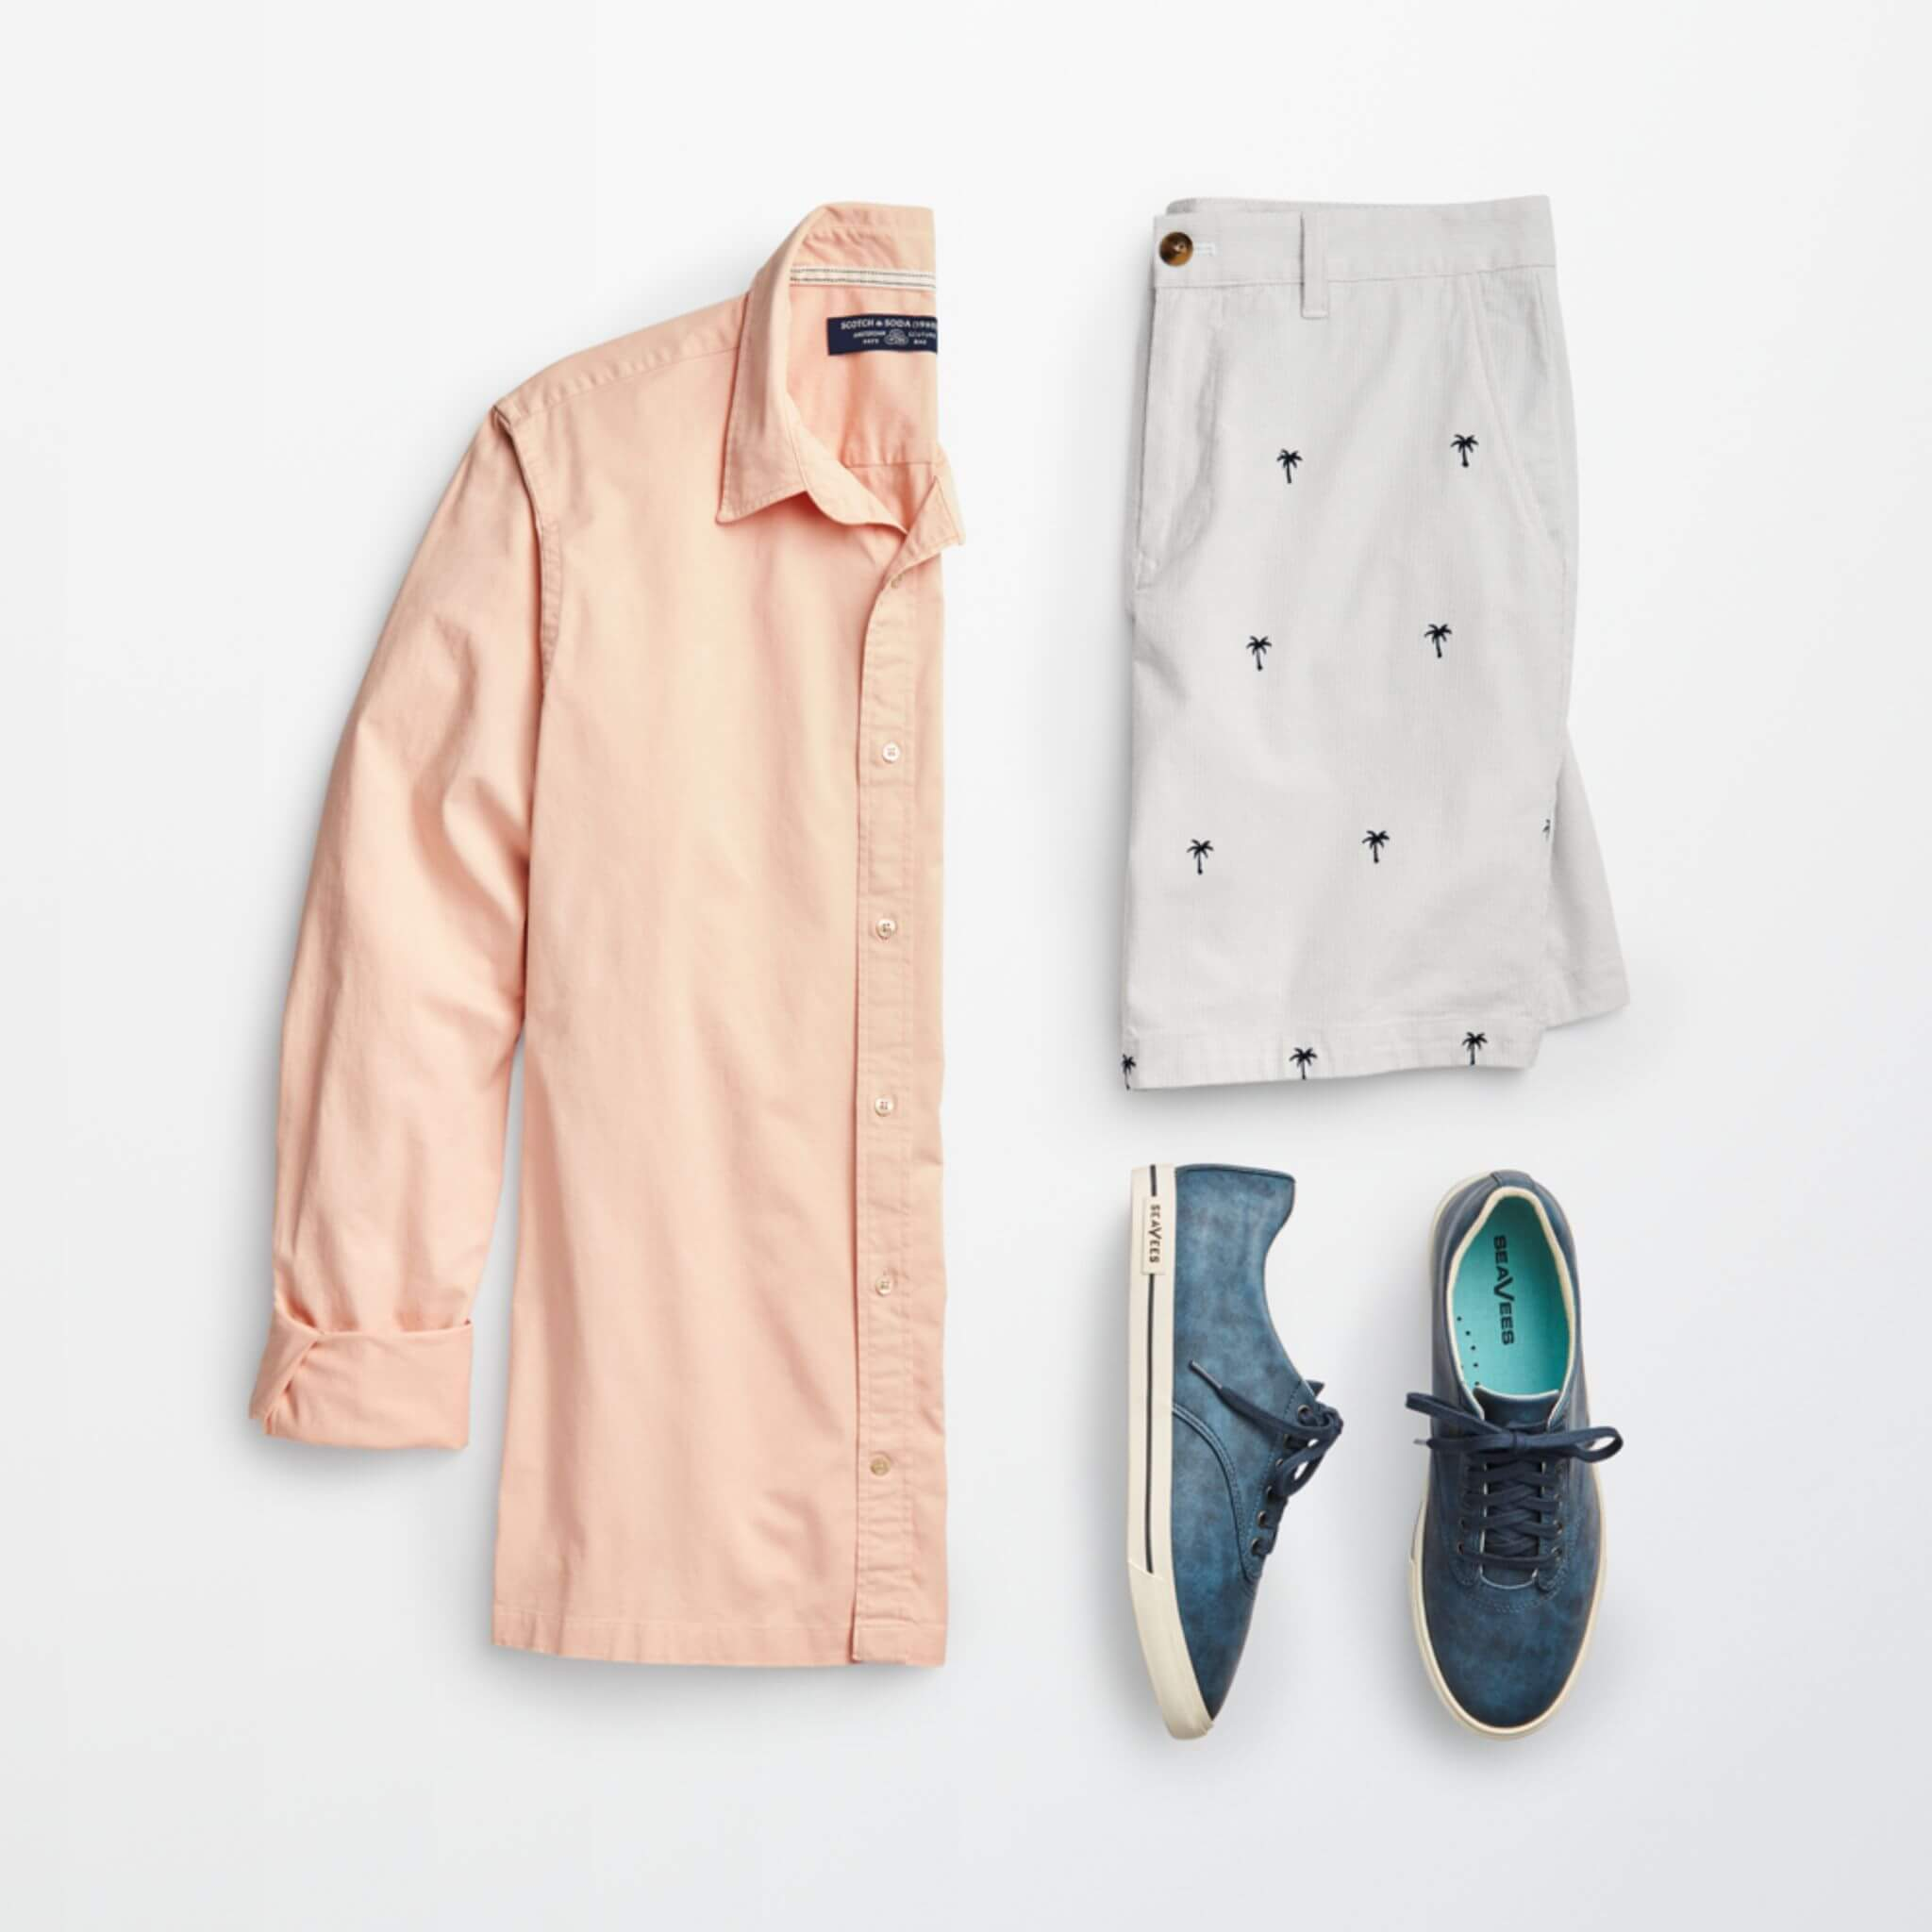 Stitch Fix Men's outfit laydown featuring peach button-up shirt, patterned shorts with small palm tree print and blue lace-up sneakers.